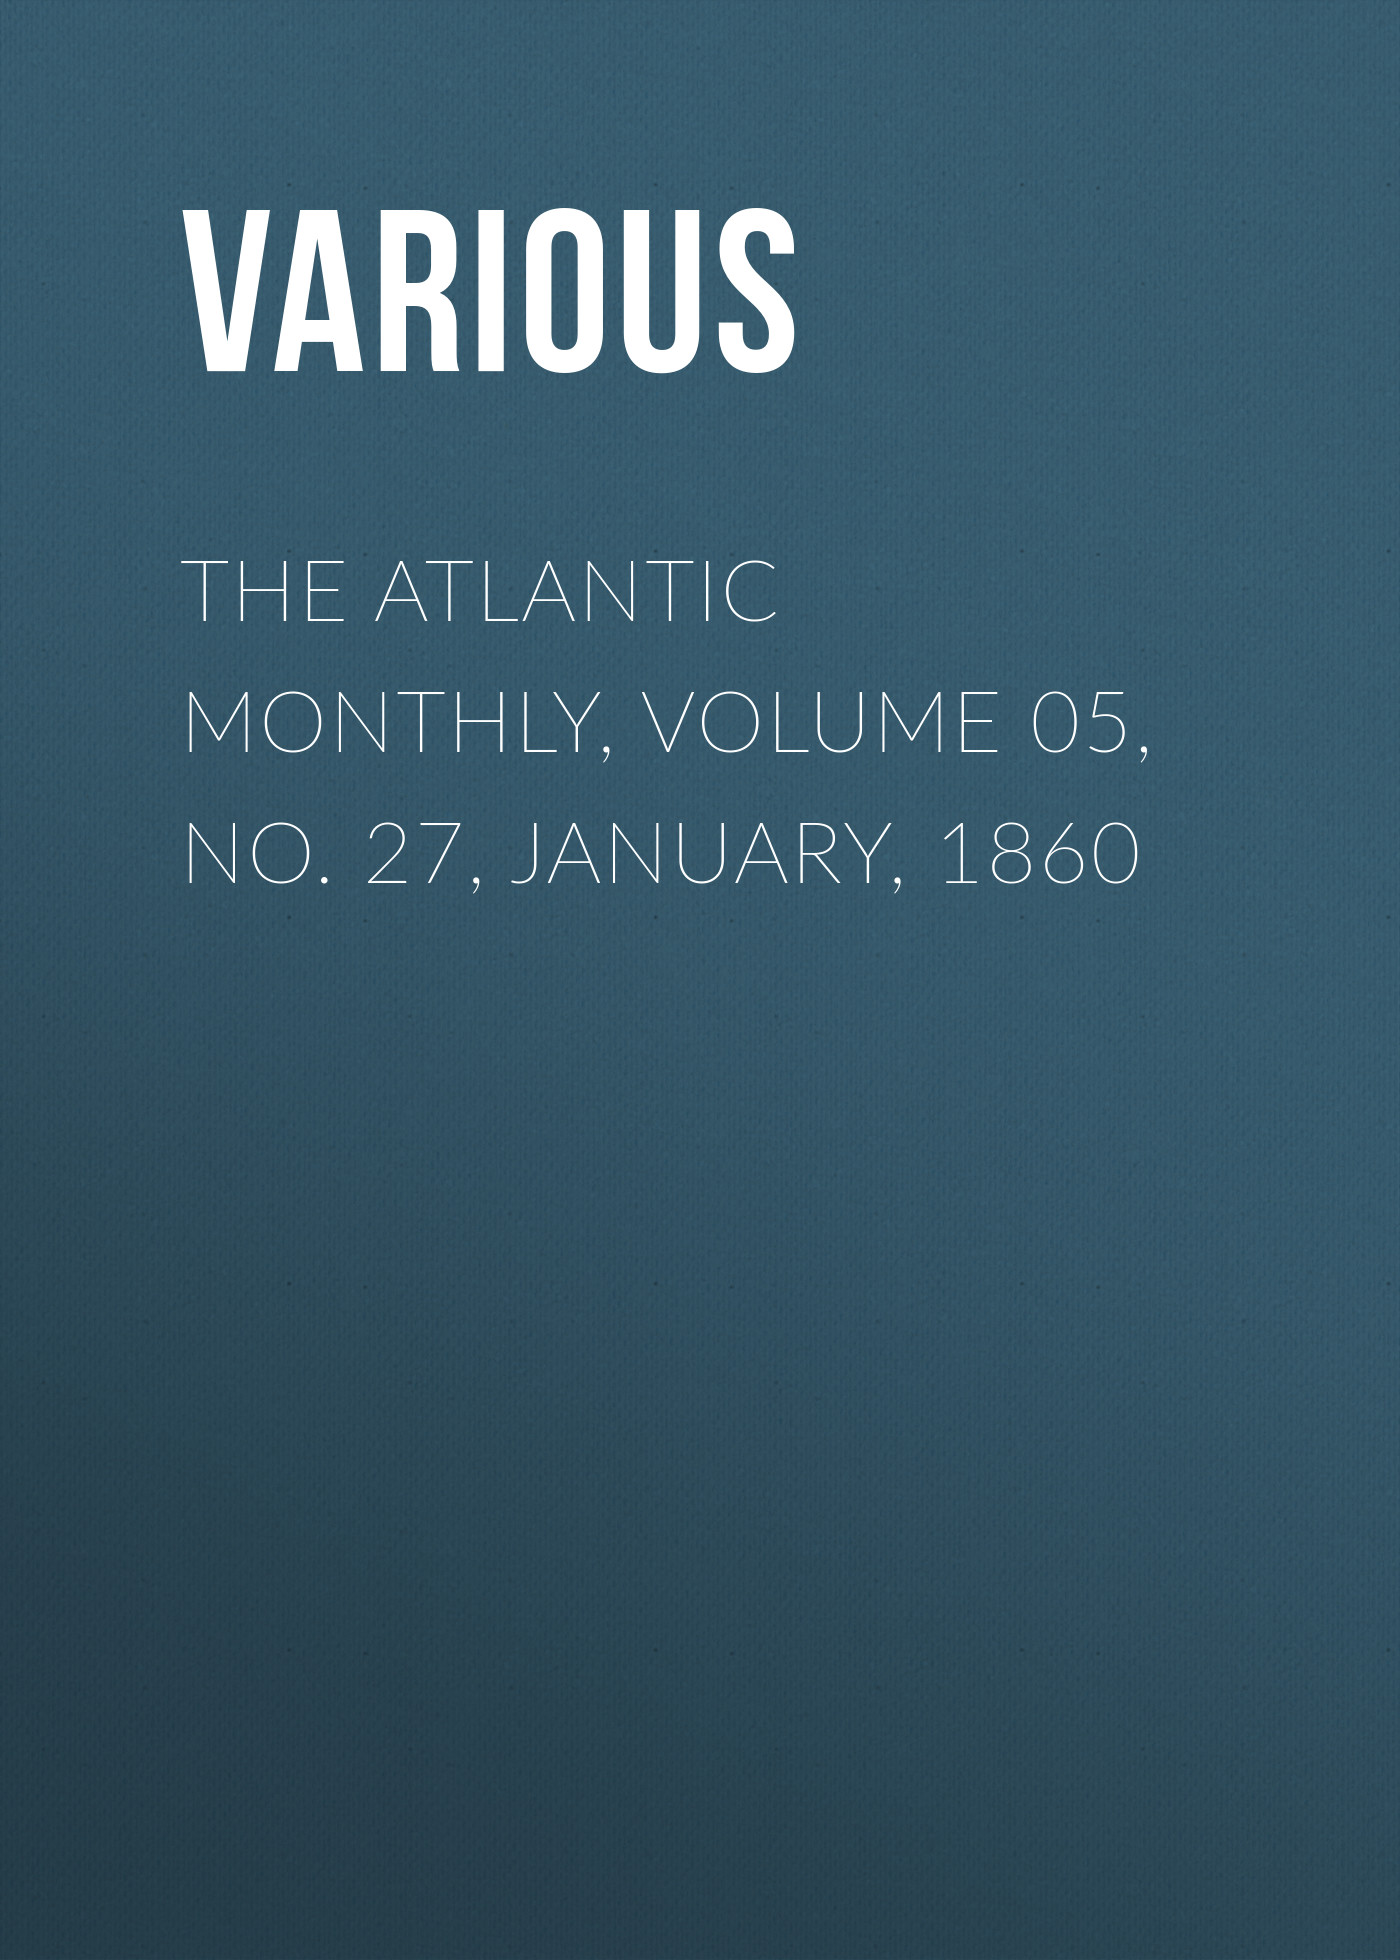 Various The Atlantic Monthly, Volume 05, No. 27, January, 1860 various the atlantic monthly volume 11 no 63 january 1863